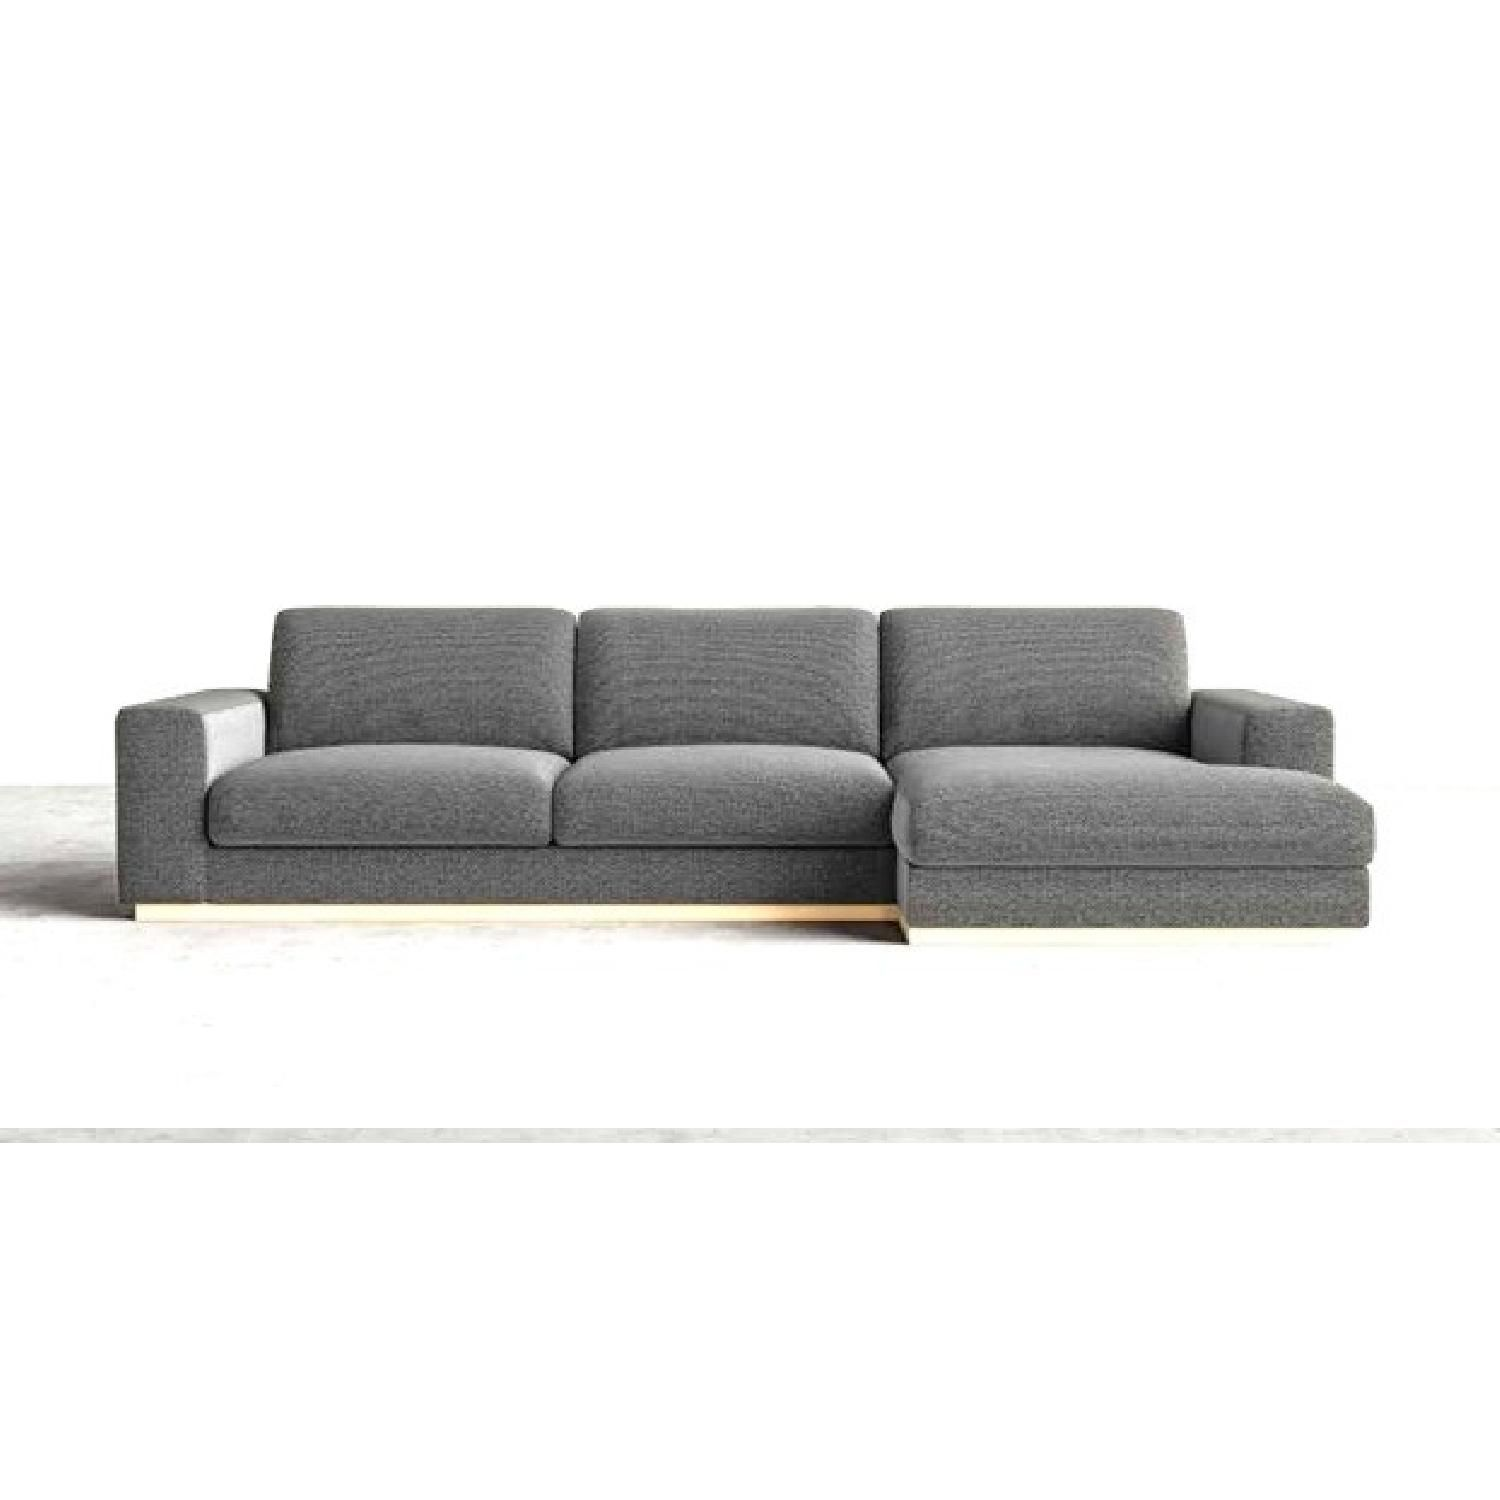 This Is A Rove Concepts Noah 2 Piece Sectional Sofa For $1,800.00. HEY GUYS